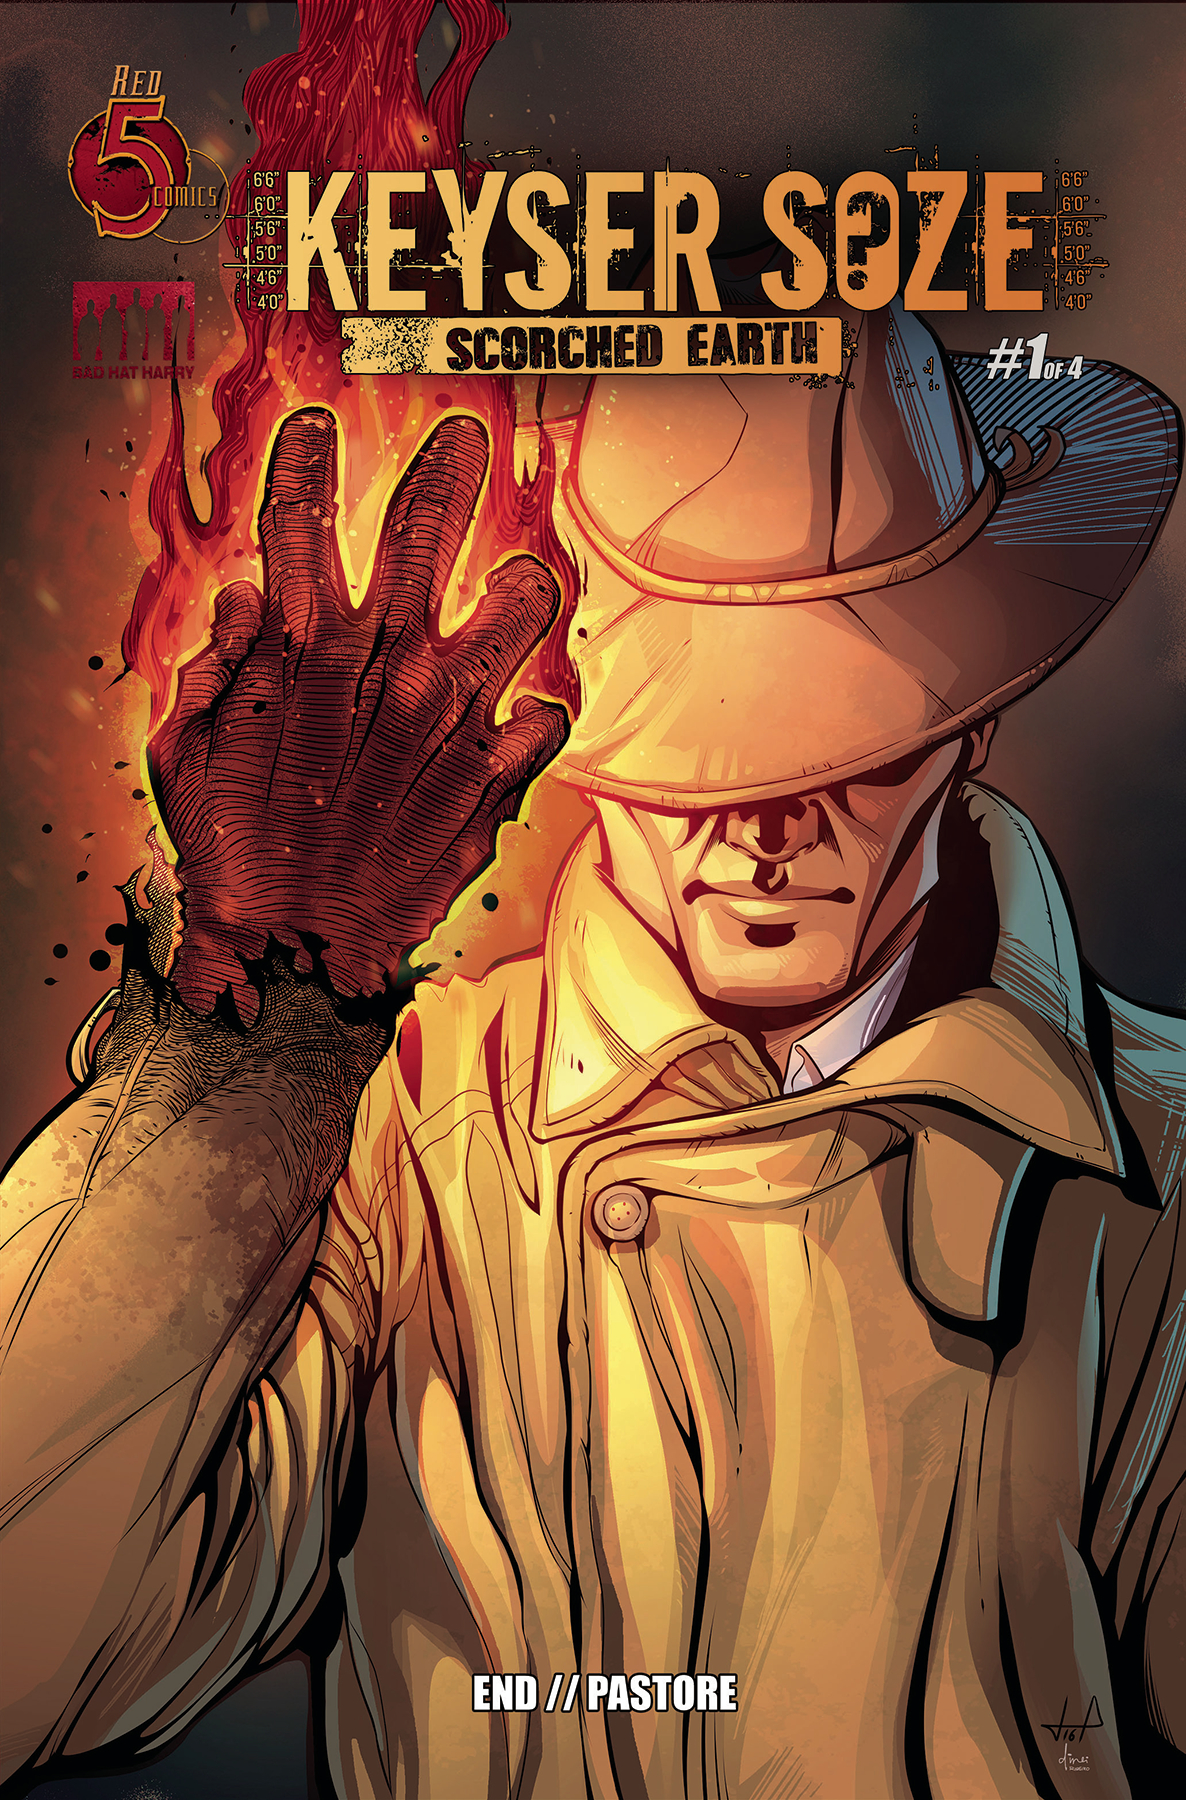 KEYSER SOZE SCORCHED EARTH #1